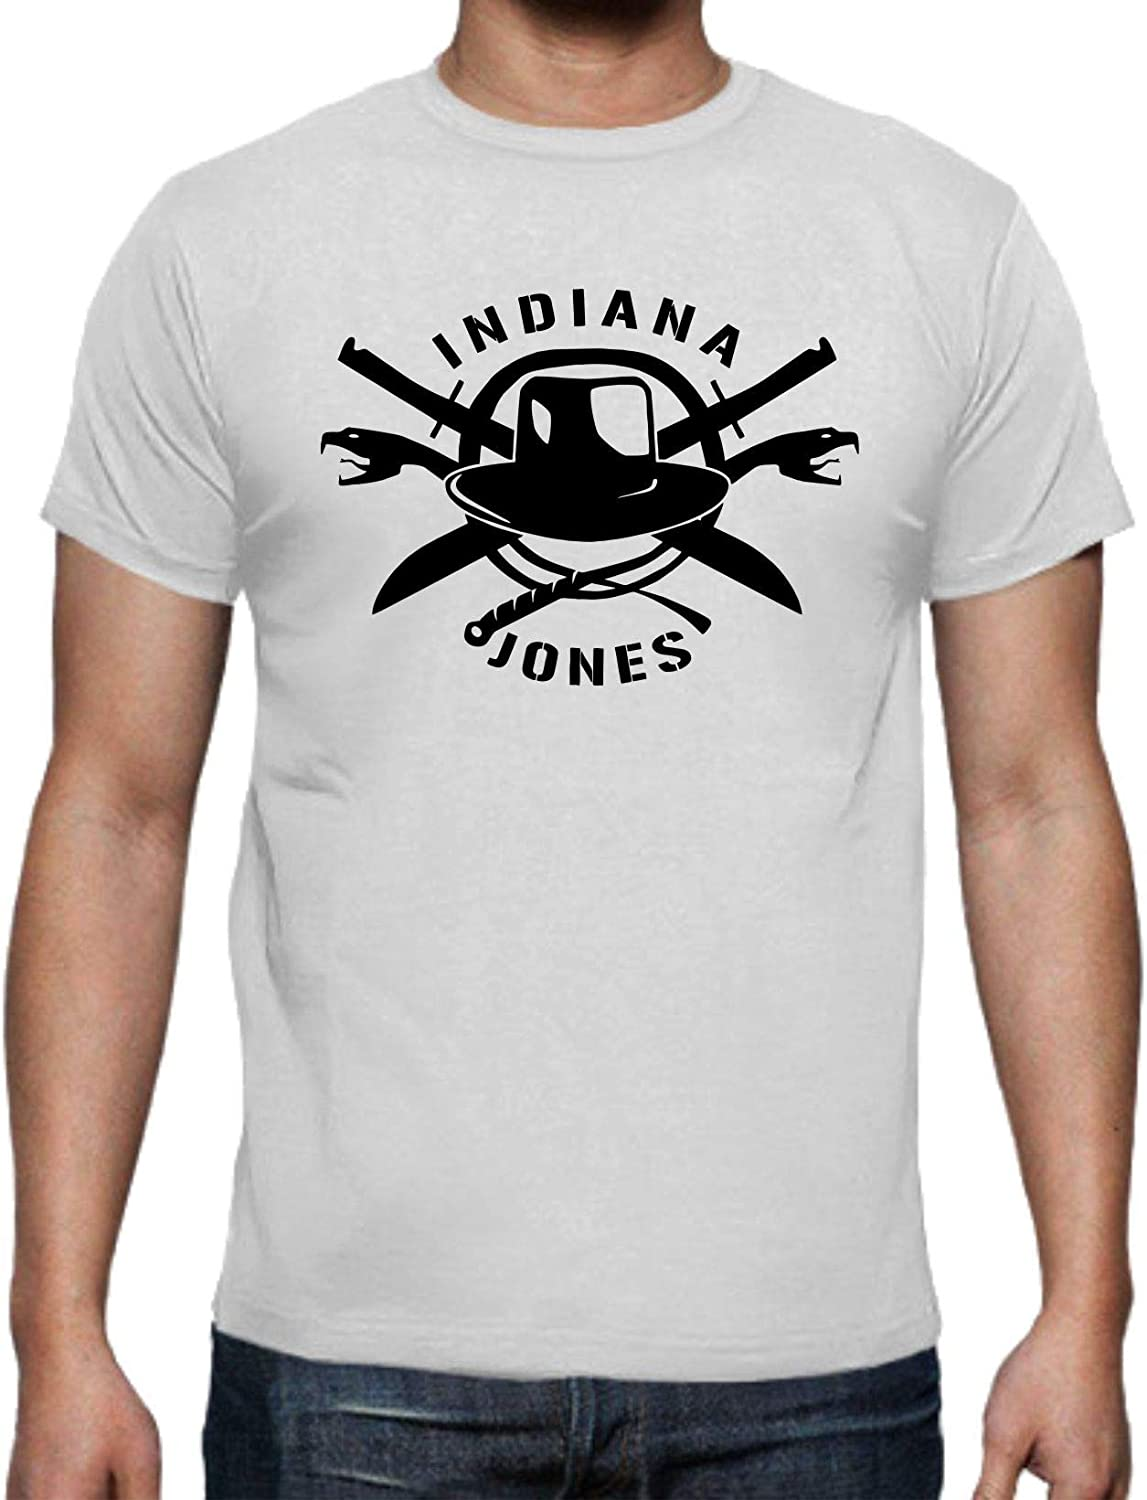 The Fan Tee Camiseta de Hombre Indiana Jones Doctor Arca Perdida Templo Maldito 003: Amazon.es: Ropa y accesorios